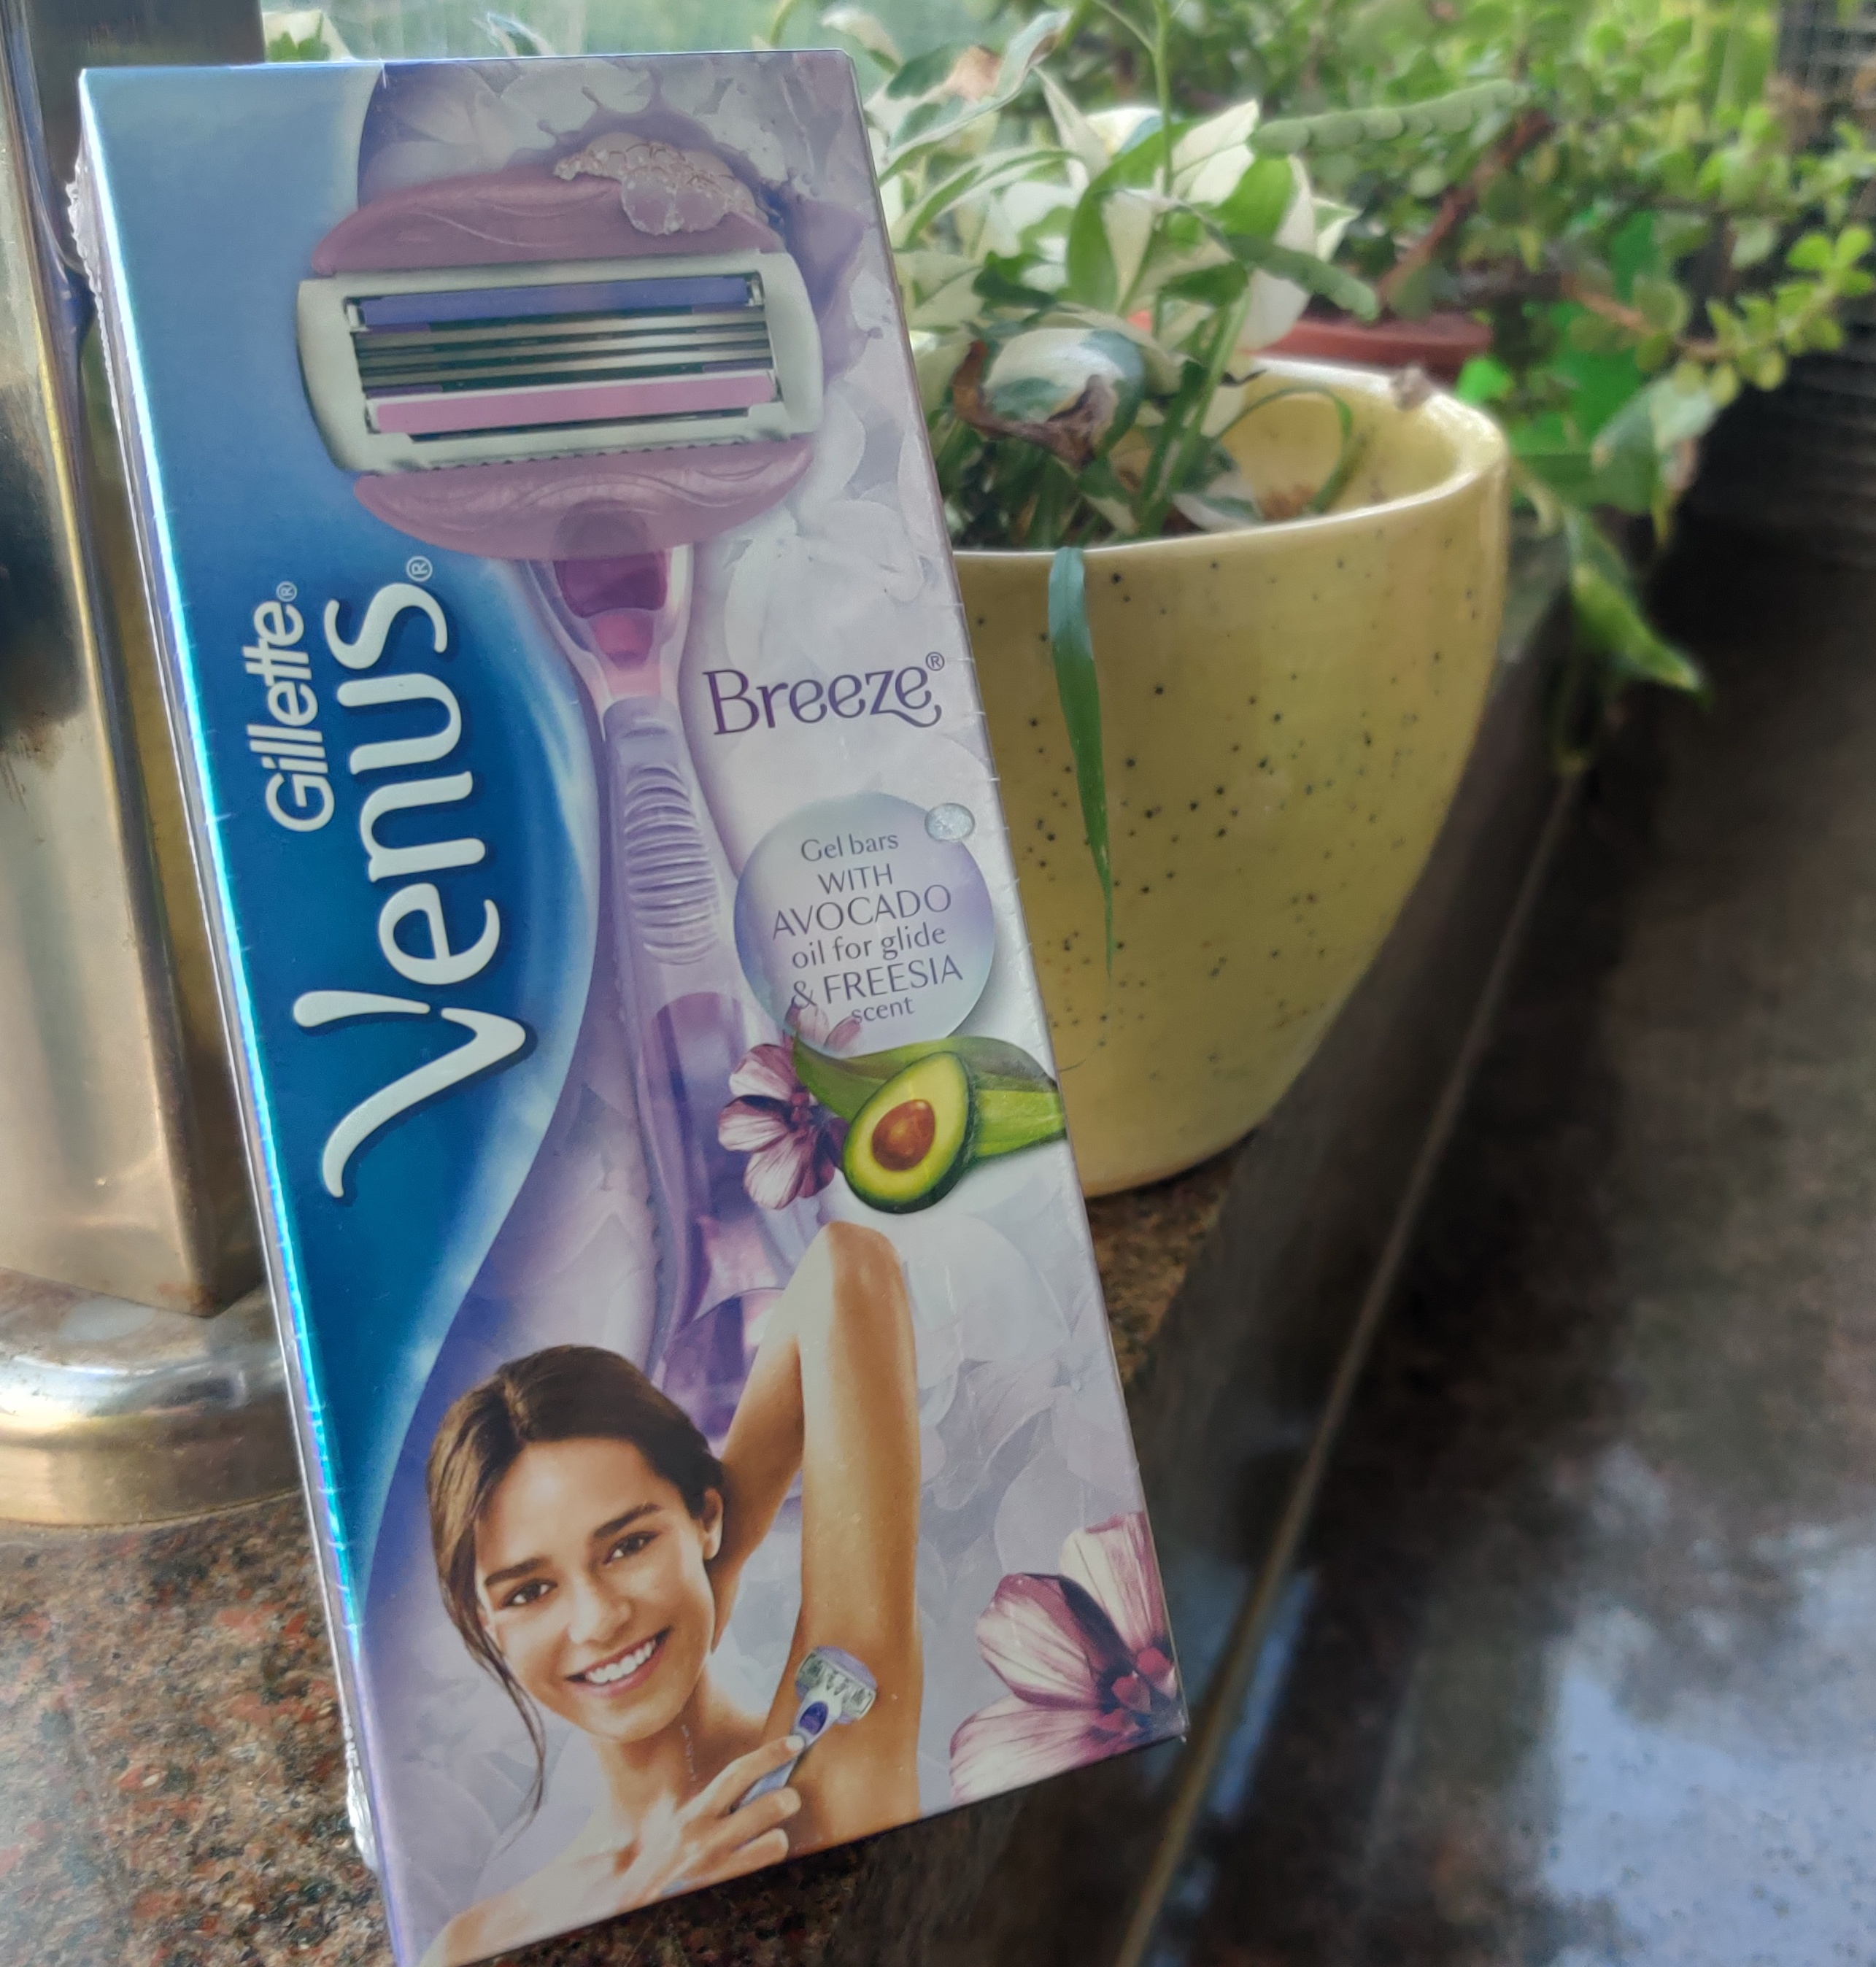 Gillette Venus Breeze Razor-Smooth and feather touch-By raisingtweentot